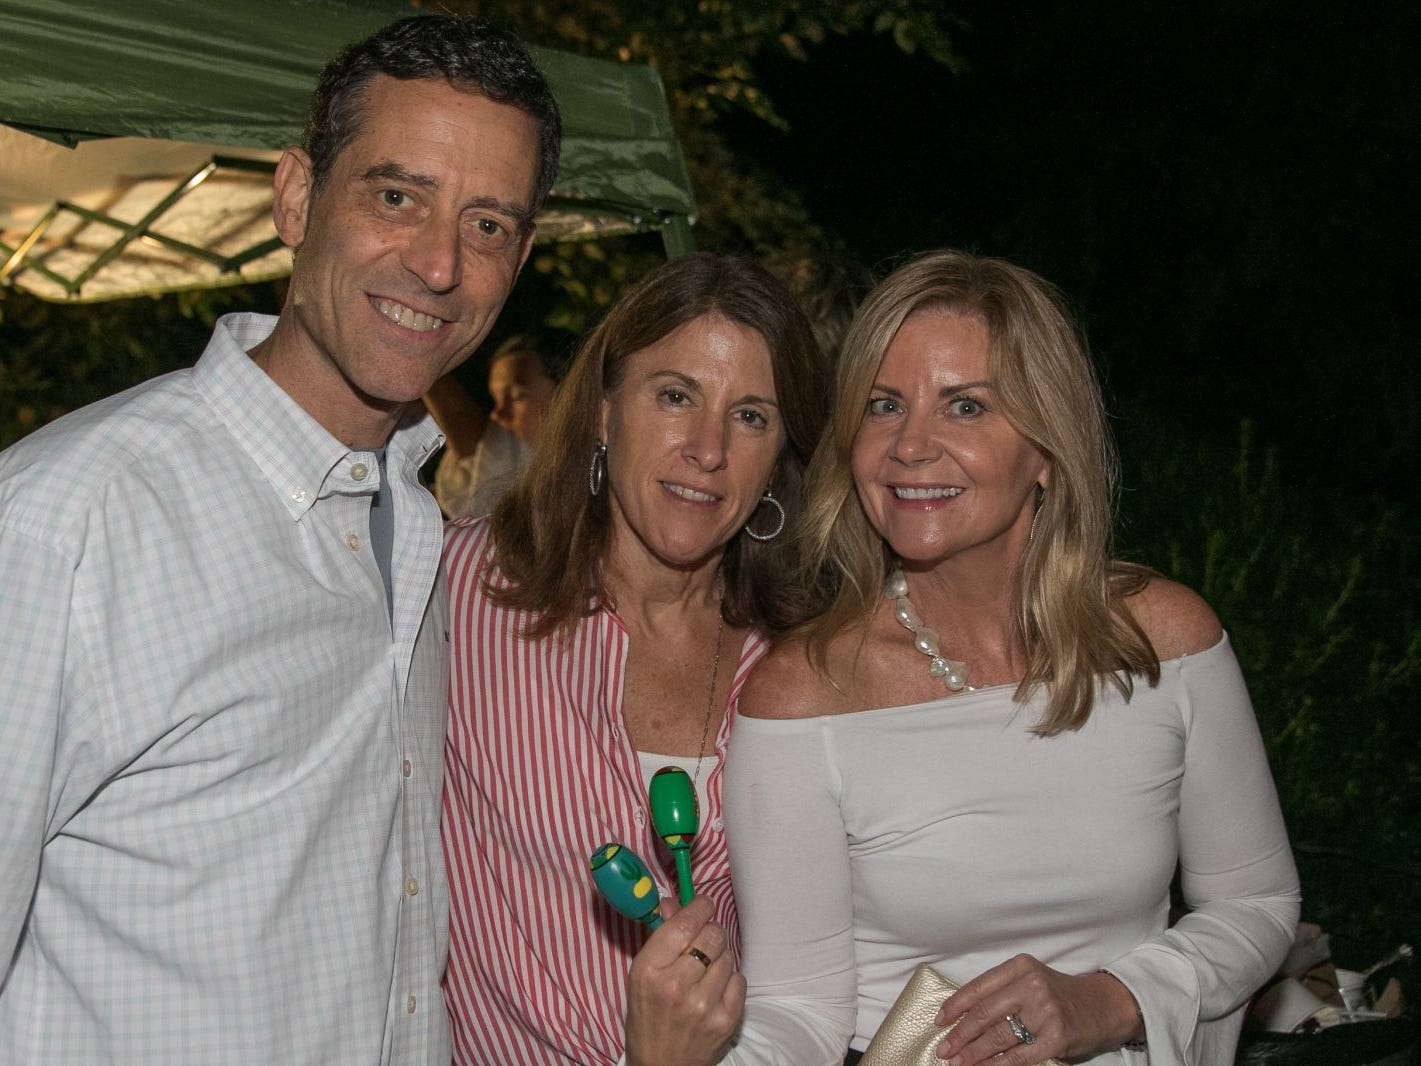 "Mark Maltz, Lynn Maltz, Janine Vellis. Pam Chmiel, The Tres Amigos Paella Company (David Colin, Joe Scanlon and Jeff Saladucha), The Jims (Jim Gibney and Jim Toscano), George Nikias, Ron Oscher and Neil Murphy held Ridgewood Cooks for a Cause to benefit ""Cookies For Kids Cancer"" (Childhood Cancer Research) and YCS (Youth Consultaion Services) charities. 09/08/2018"